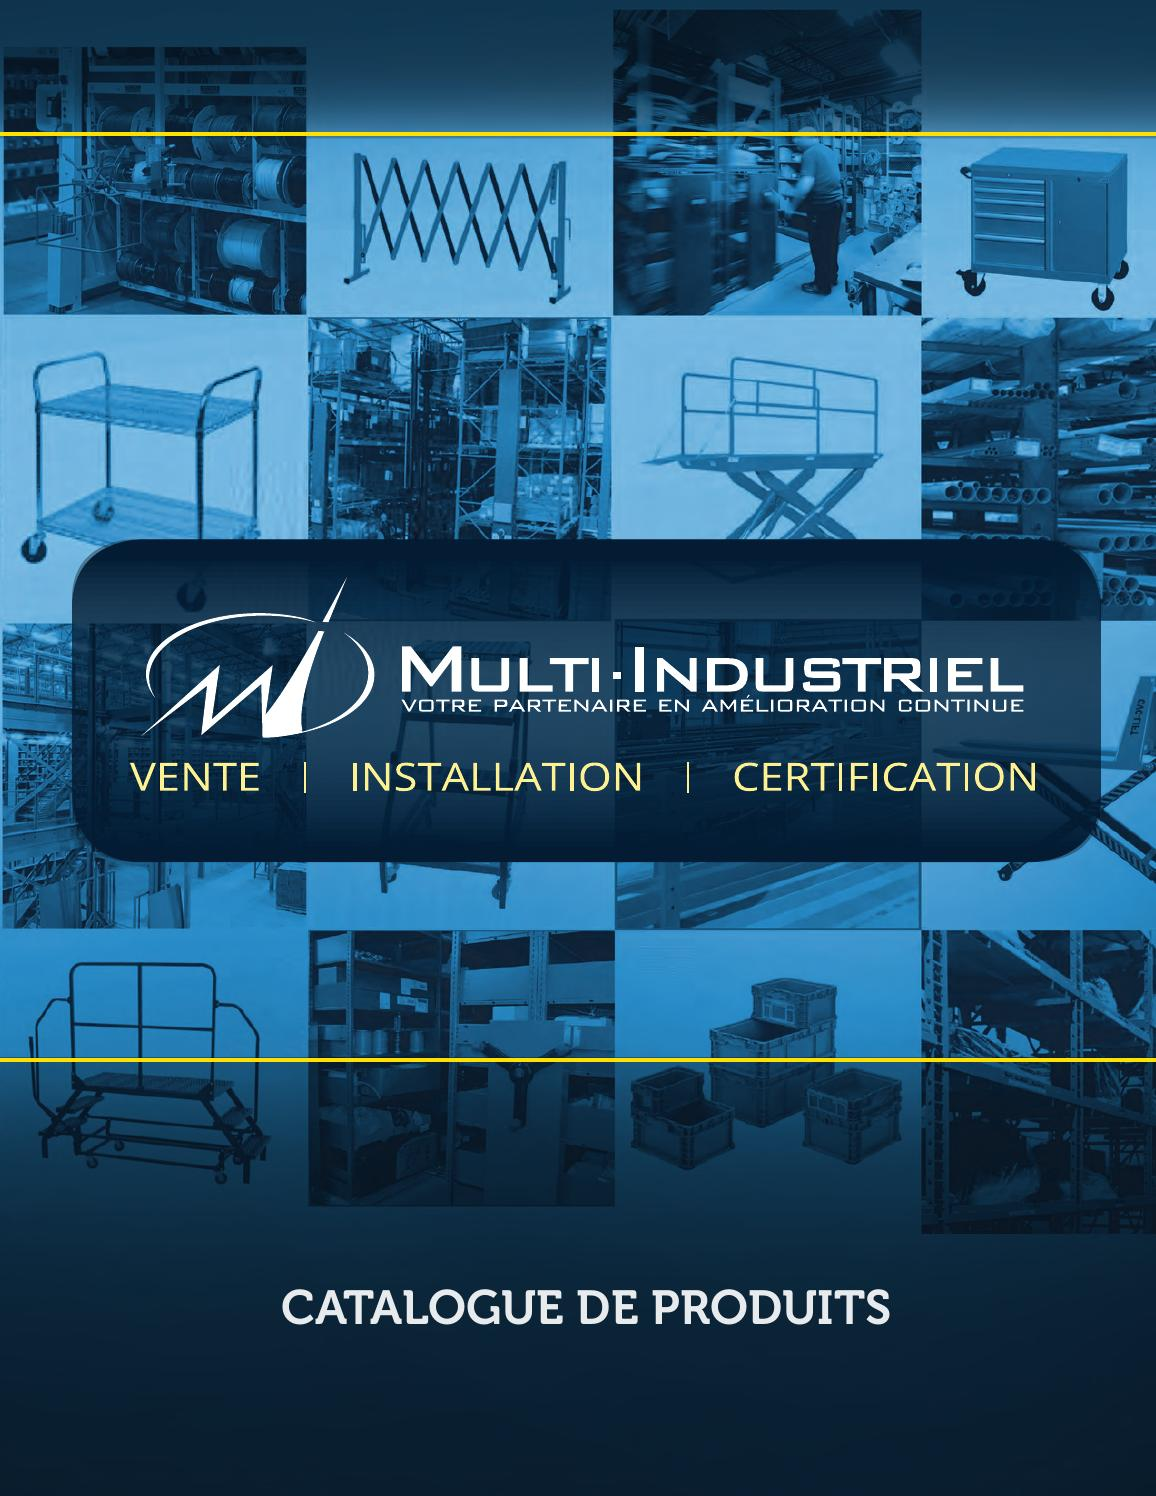 MultiIndustriel Catalogue de produits by MultiIndustriel  Issuu